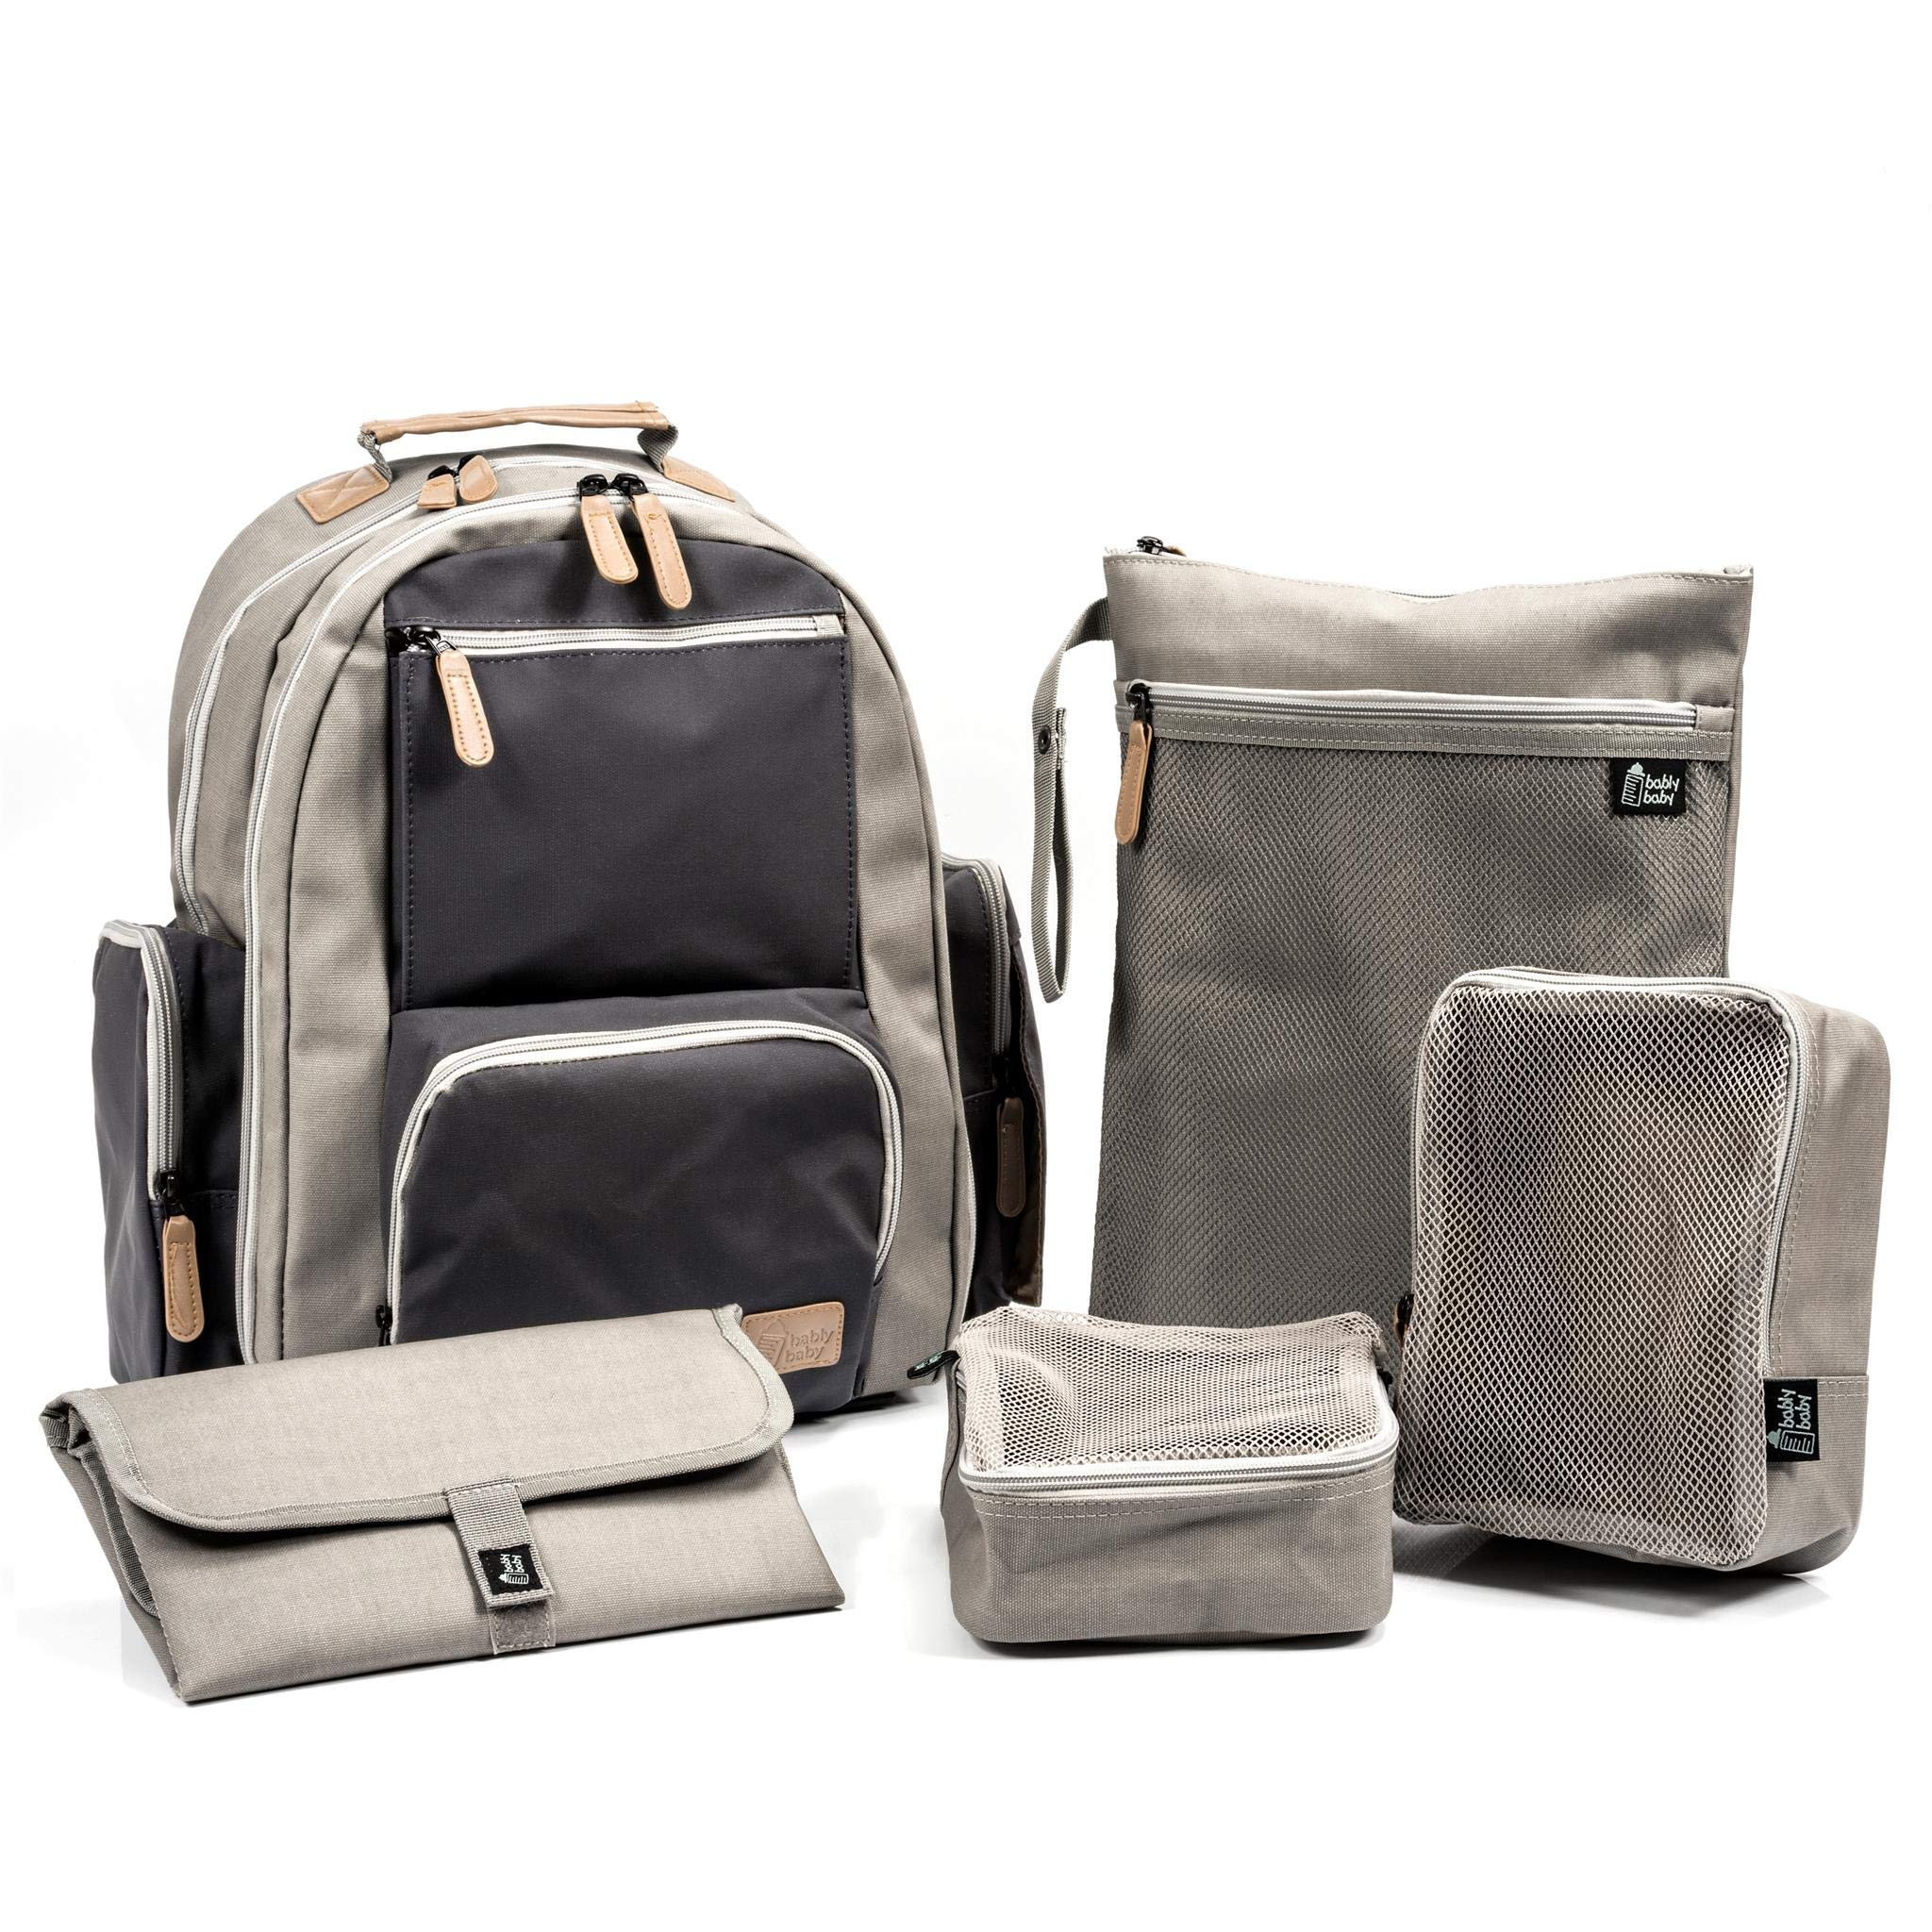 Large Capacity Diaper Bag Backpack, Coated Canvas Diaper Bag with YKK Zippers, Comes With Two Packing Cubes, Wet Dry Bag, Changing Pad, and Stroller Straps by Bably Baby (Grey/Navy Two-Tone)